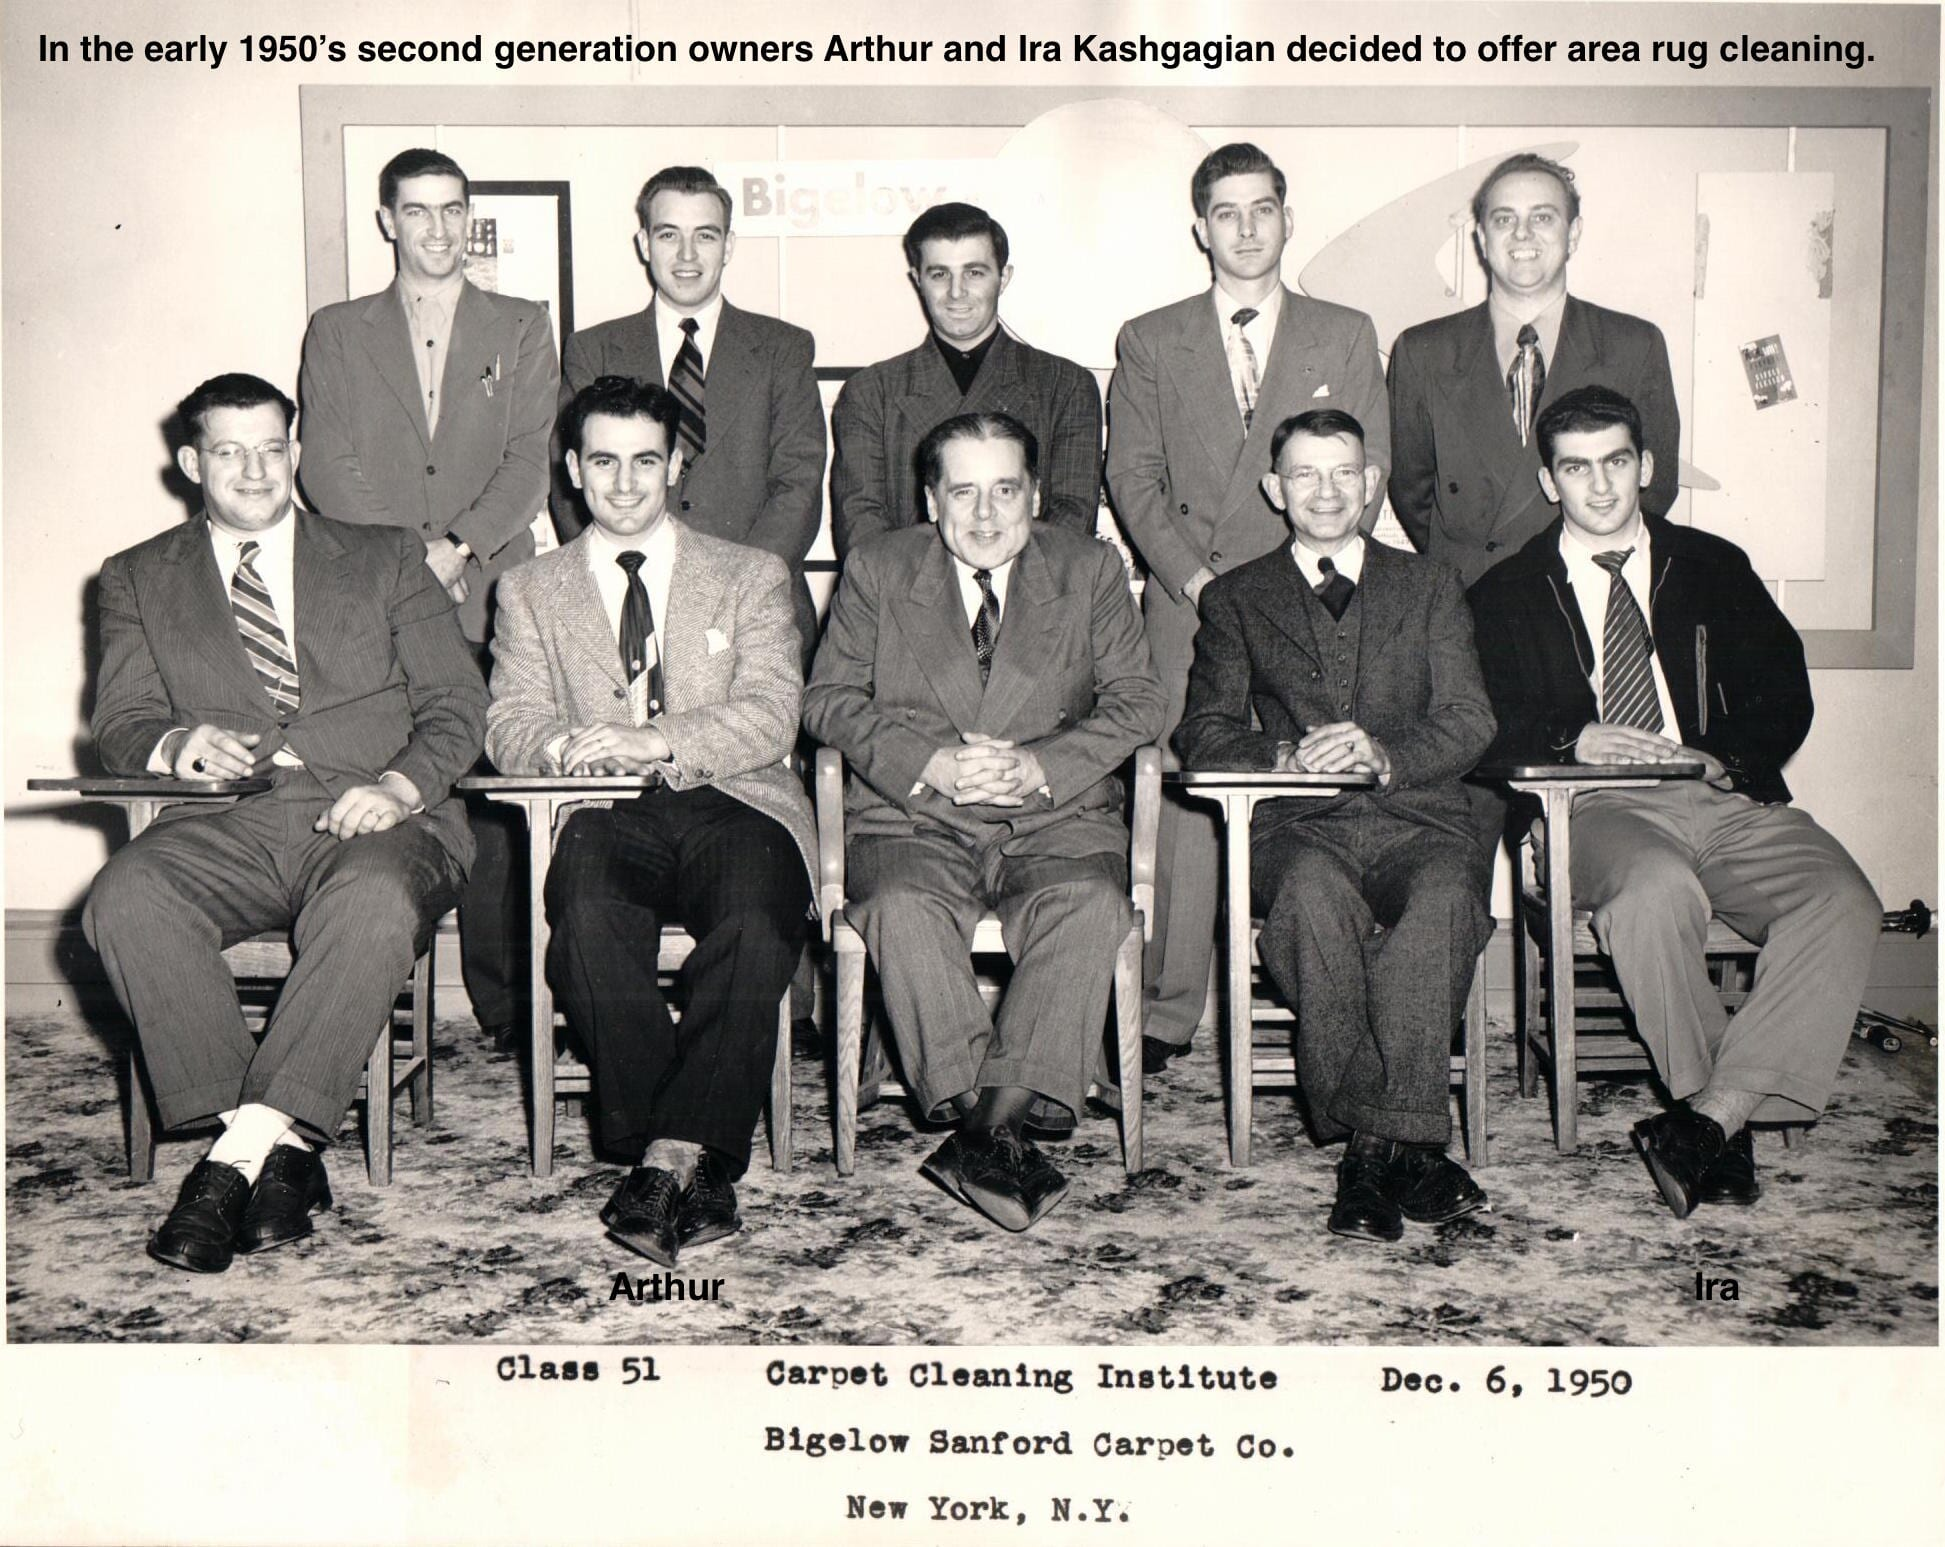 Paramount Rug Company - Carpet Cleaning Institute - Class of 1951 - Bigelow Sanford Carpet co. NY, NY